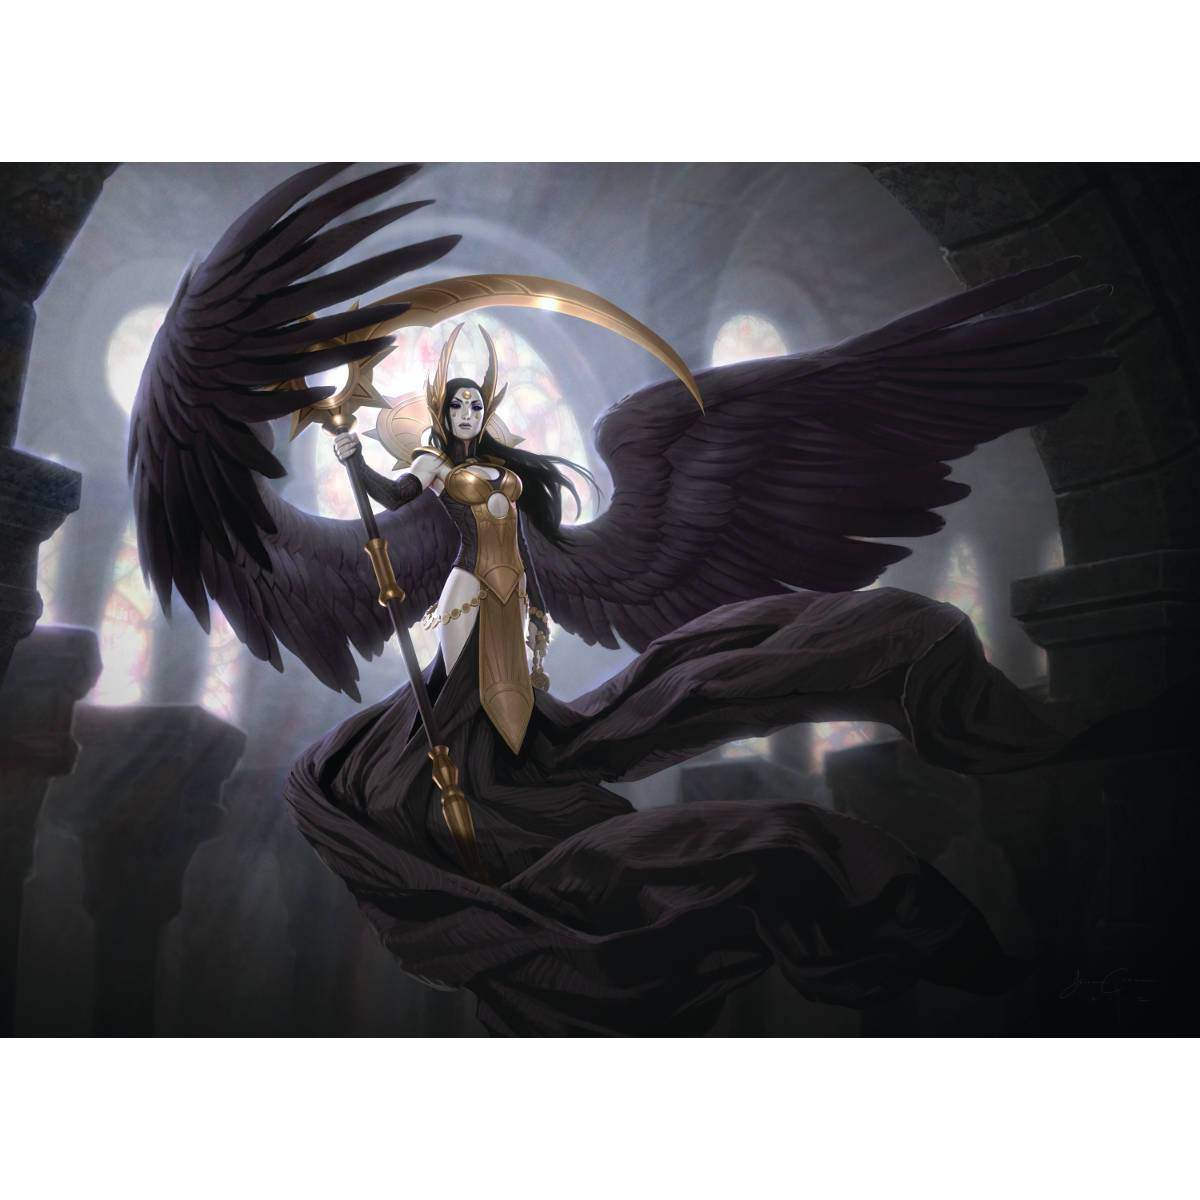 Deathpact Angel Print - Print - Original Magic Art - Accessories for Magic the Gathering and other card games